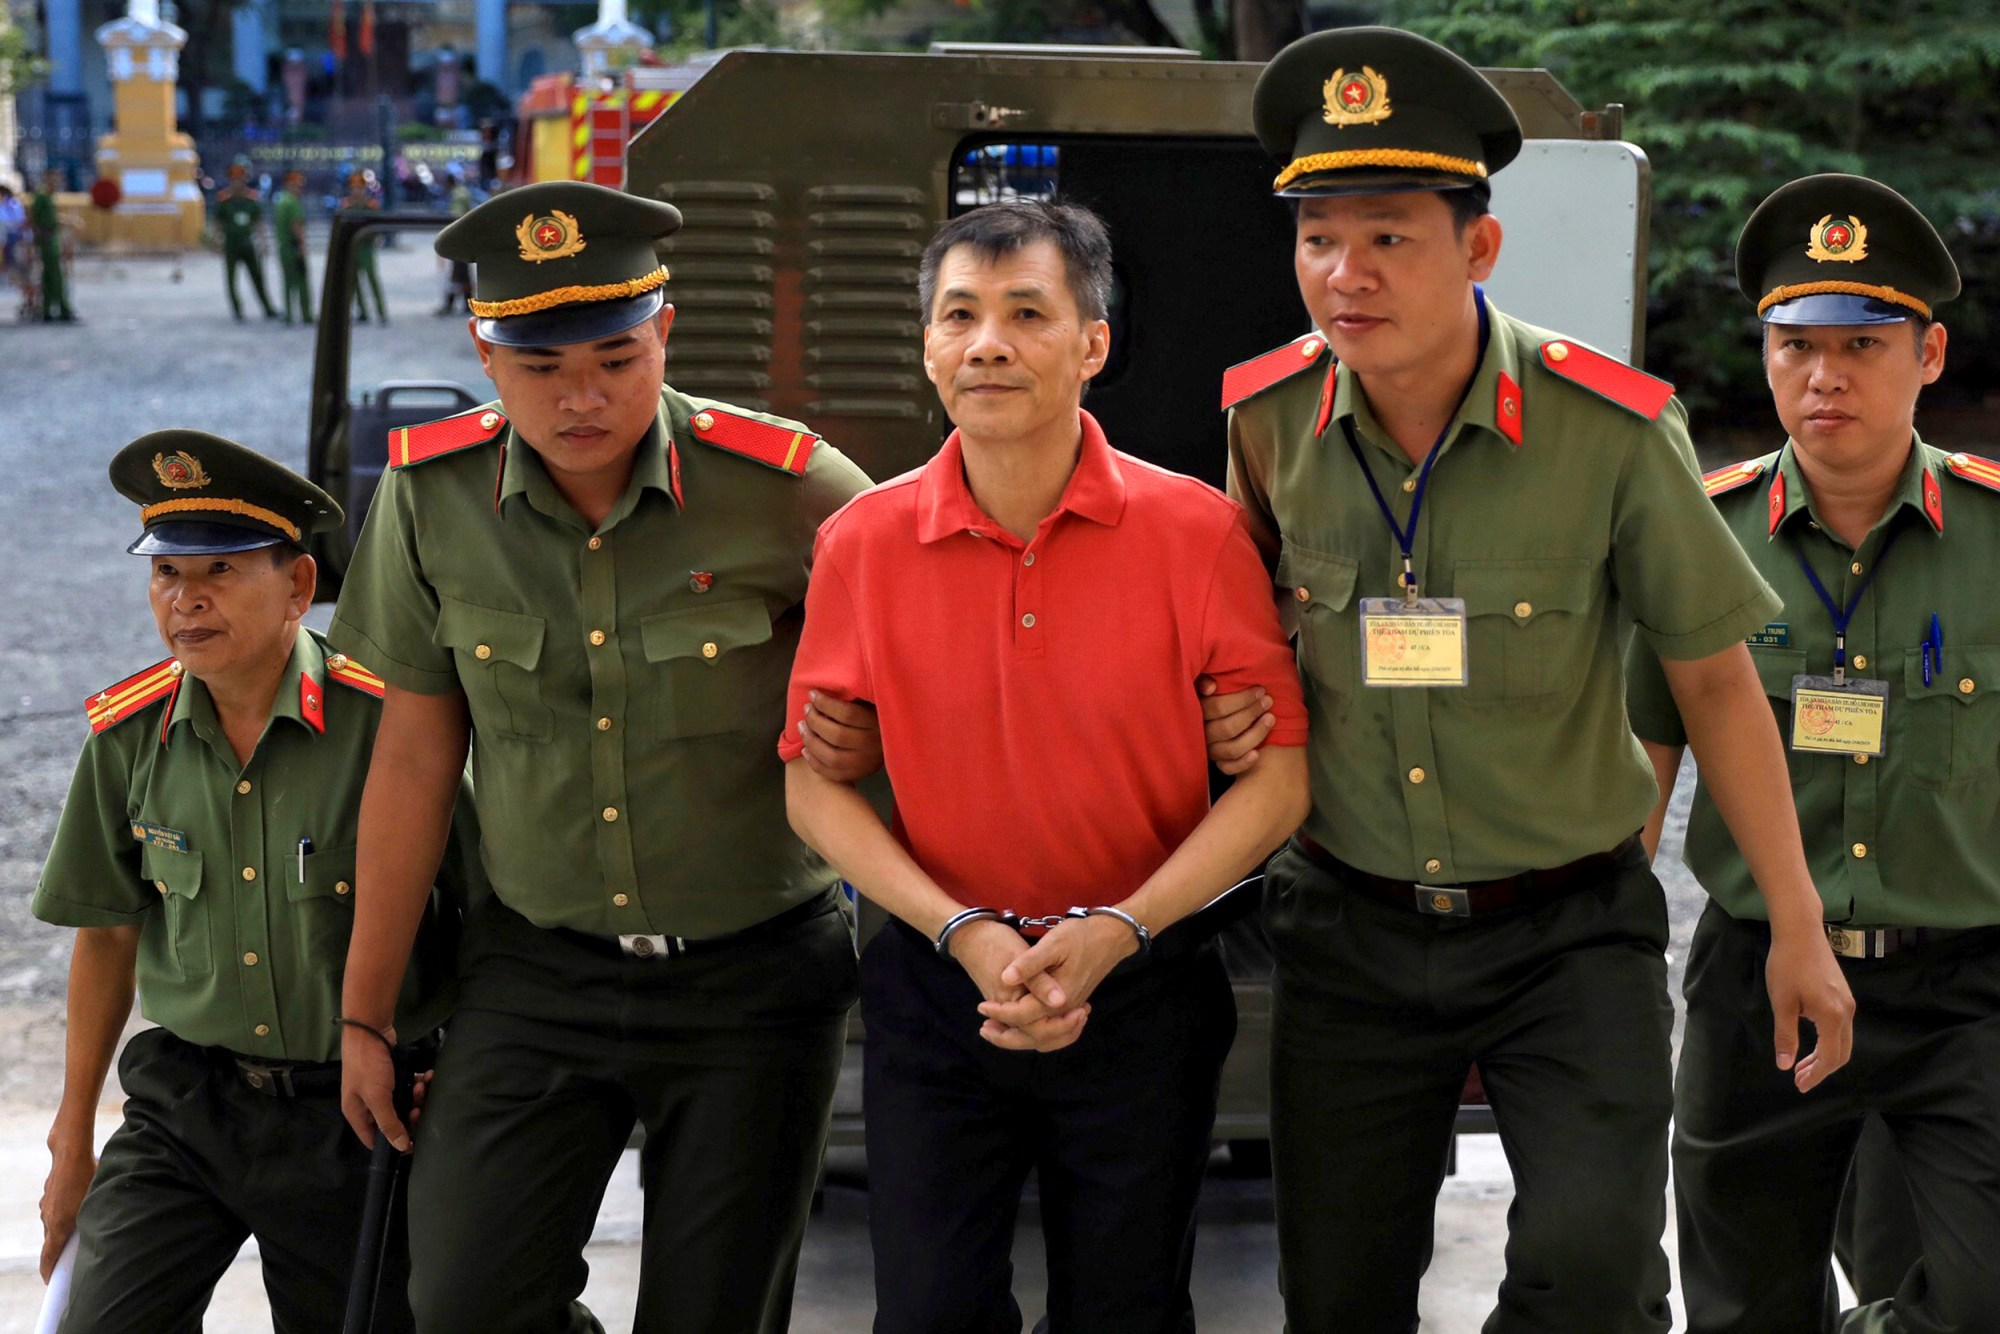 American in Vietnam sentenced to 12 years for attempting to overthrow state